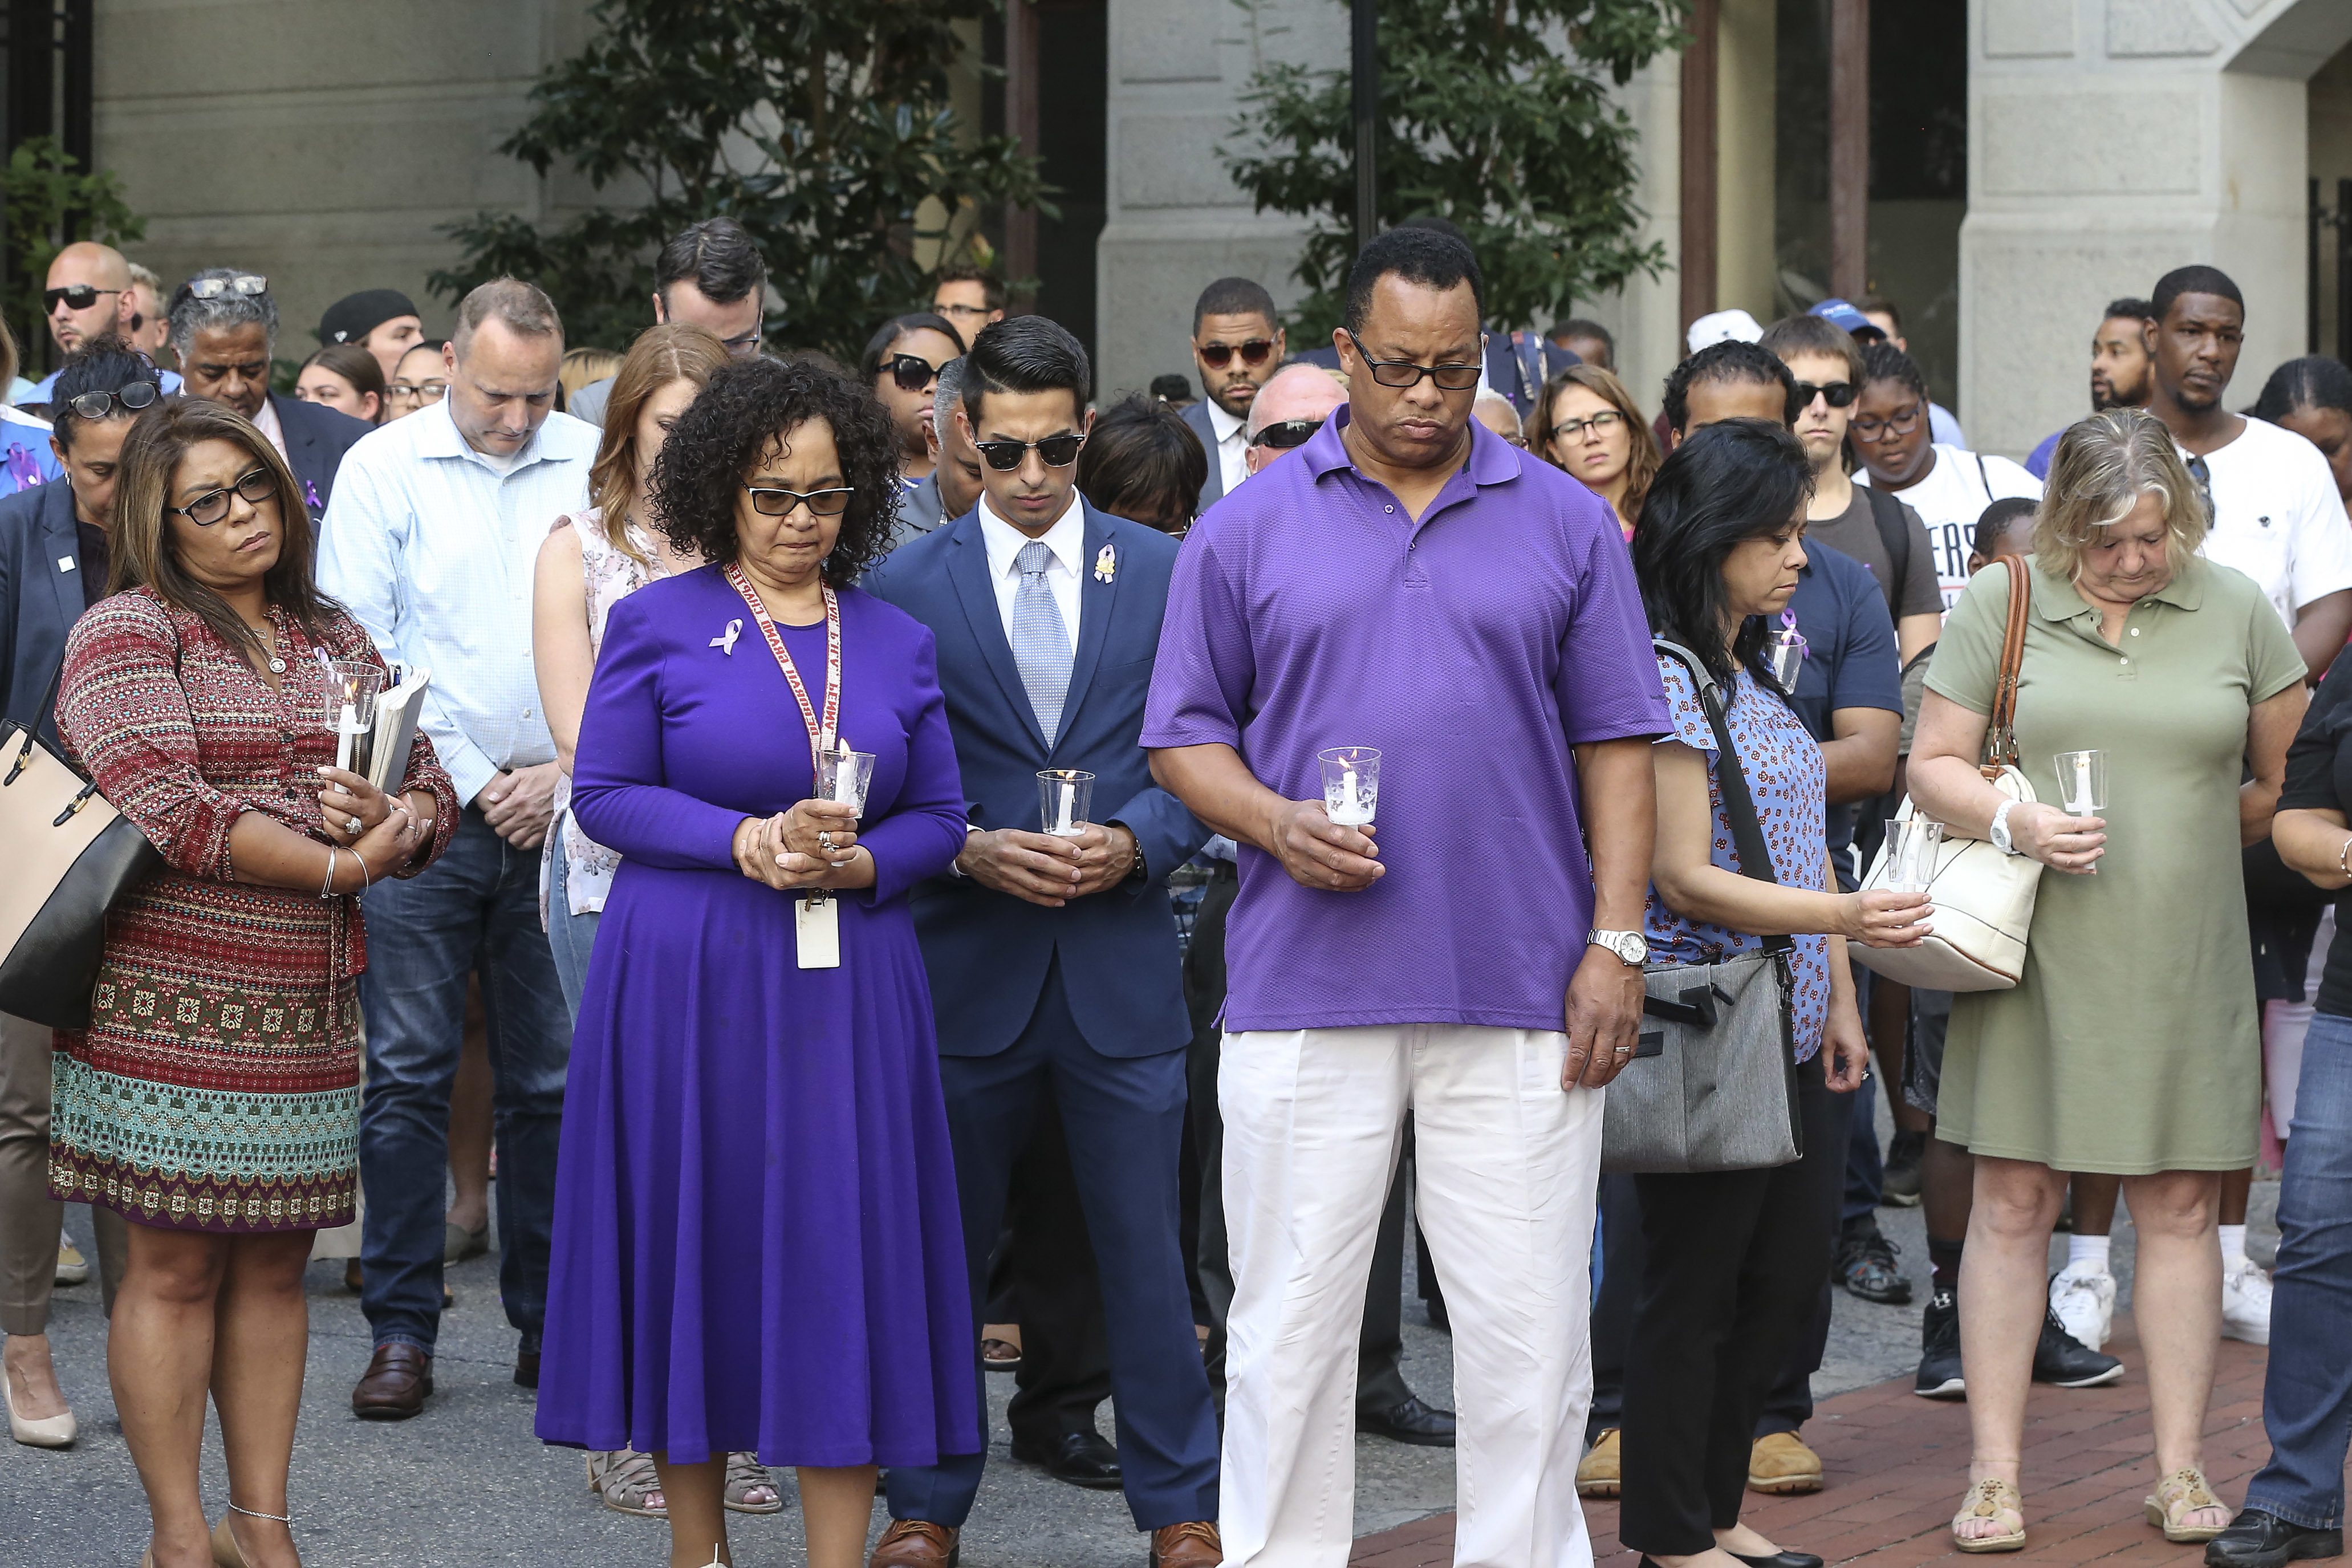 People pray during the city hall courtyard memorial vigil for Linda Rios-Neuby, the City Council staffer shot dead by her ex-husband in a murder-suicide last week. Thursday, August 23, 2018. STEVEN M. FALK / Staff Photographer